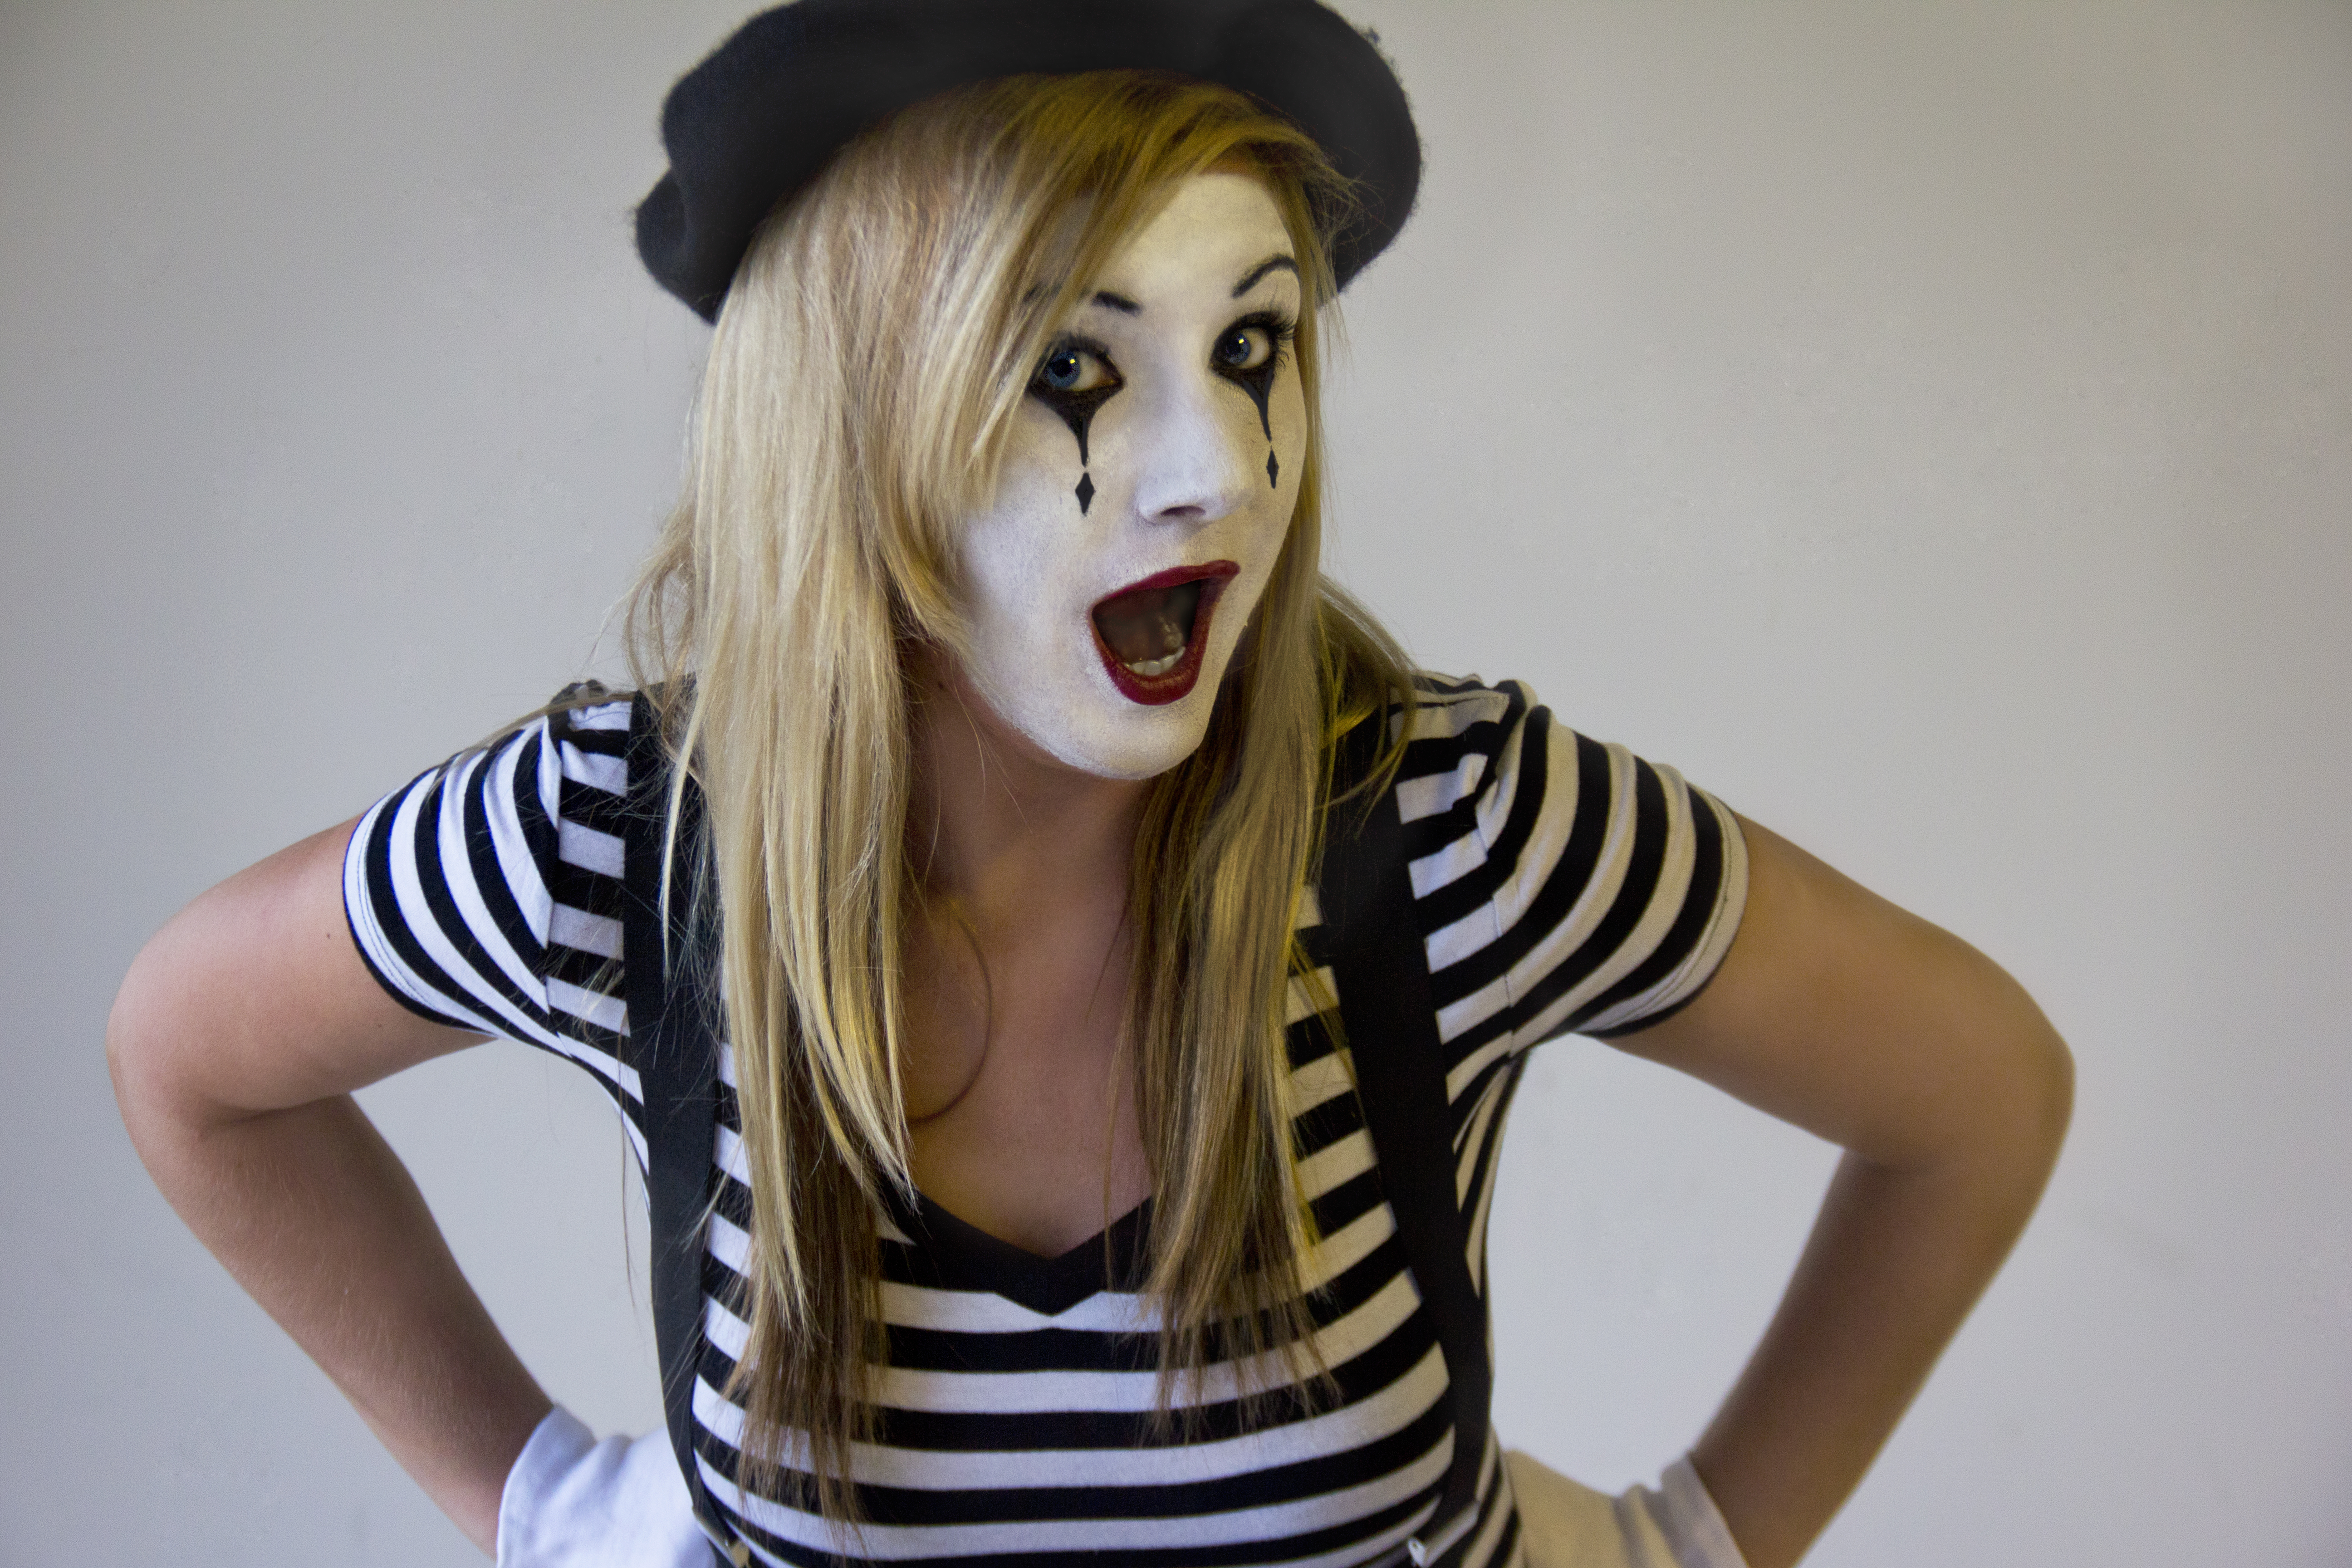 easy homemade scary halloween costumes for adults